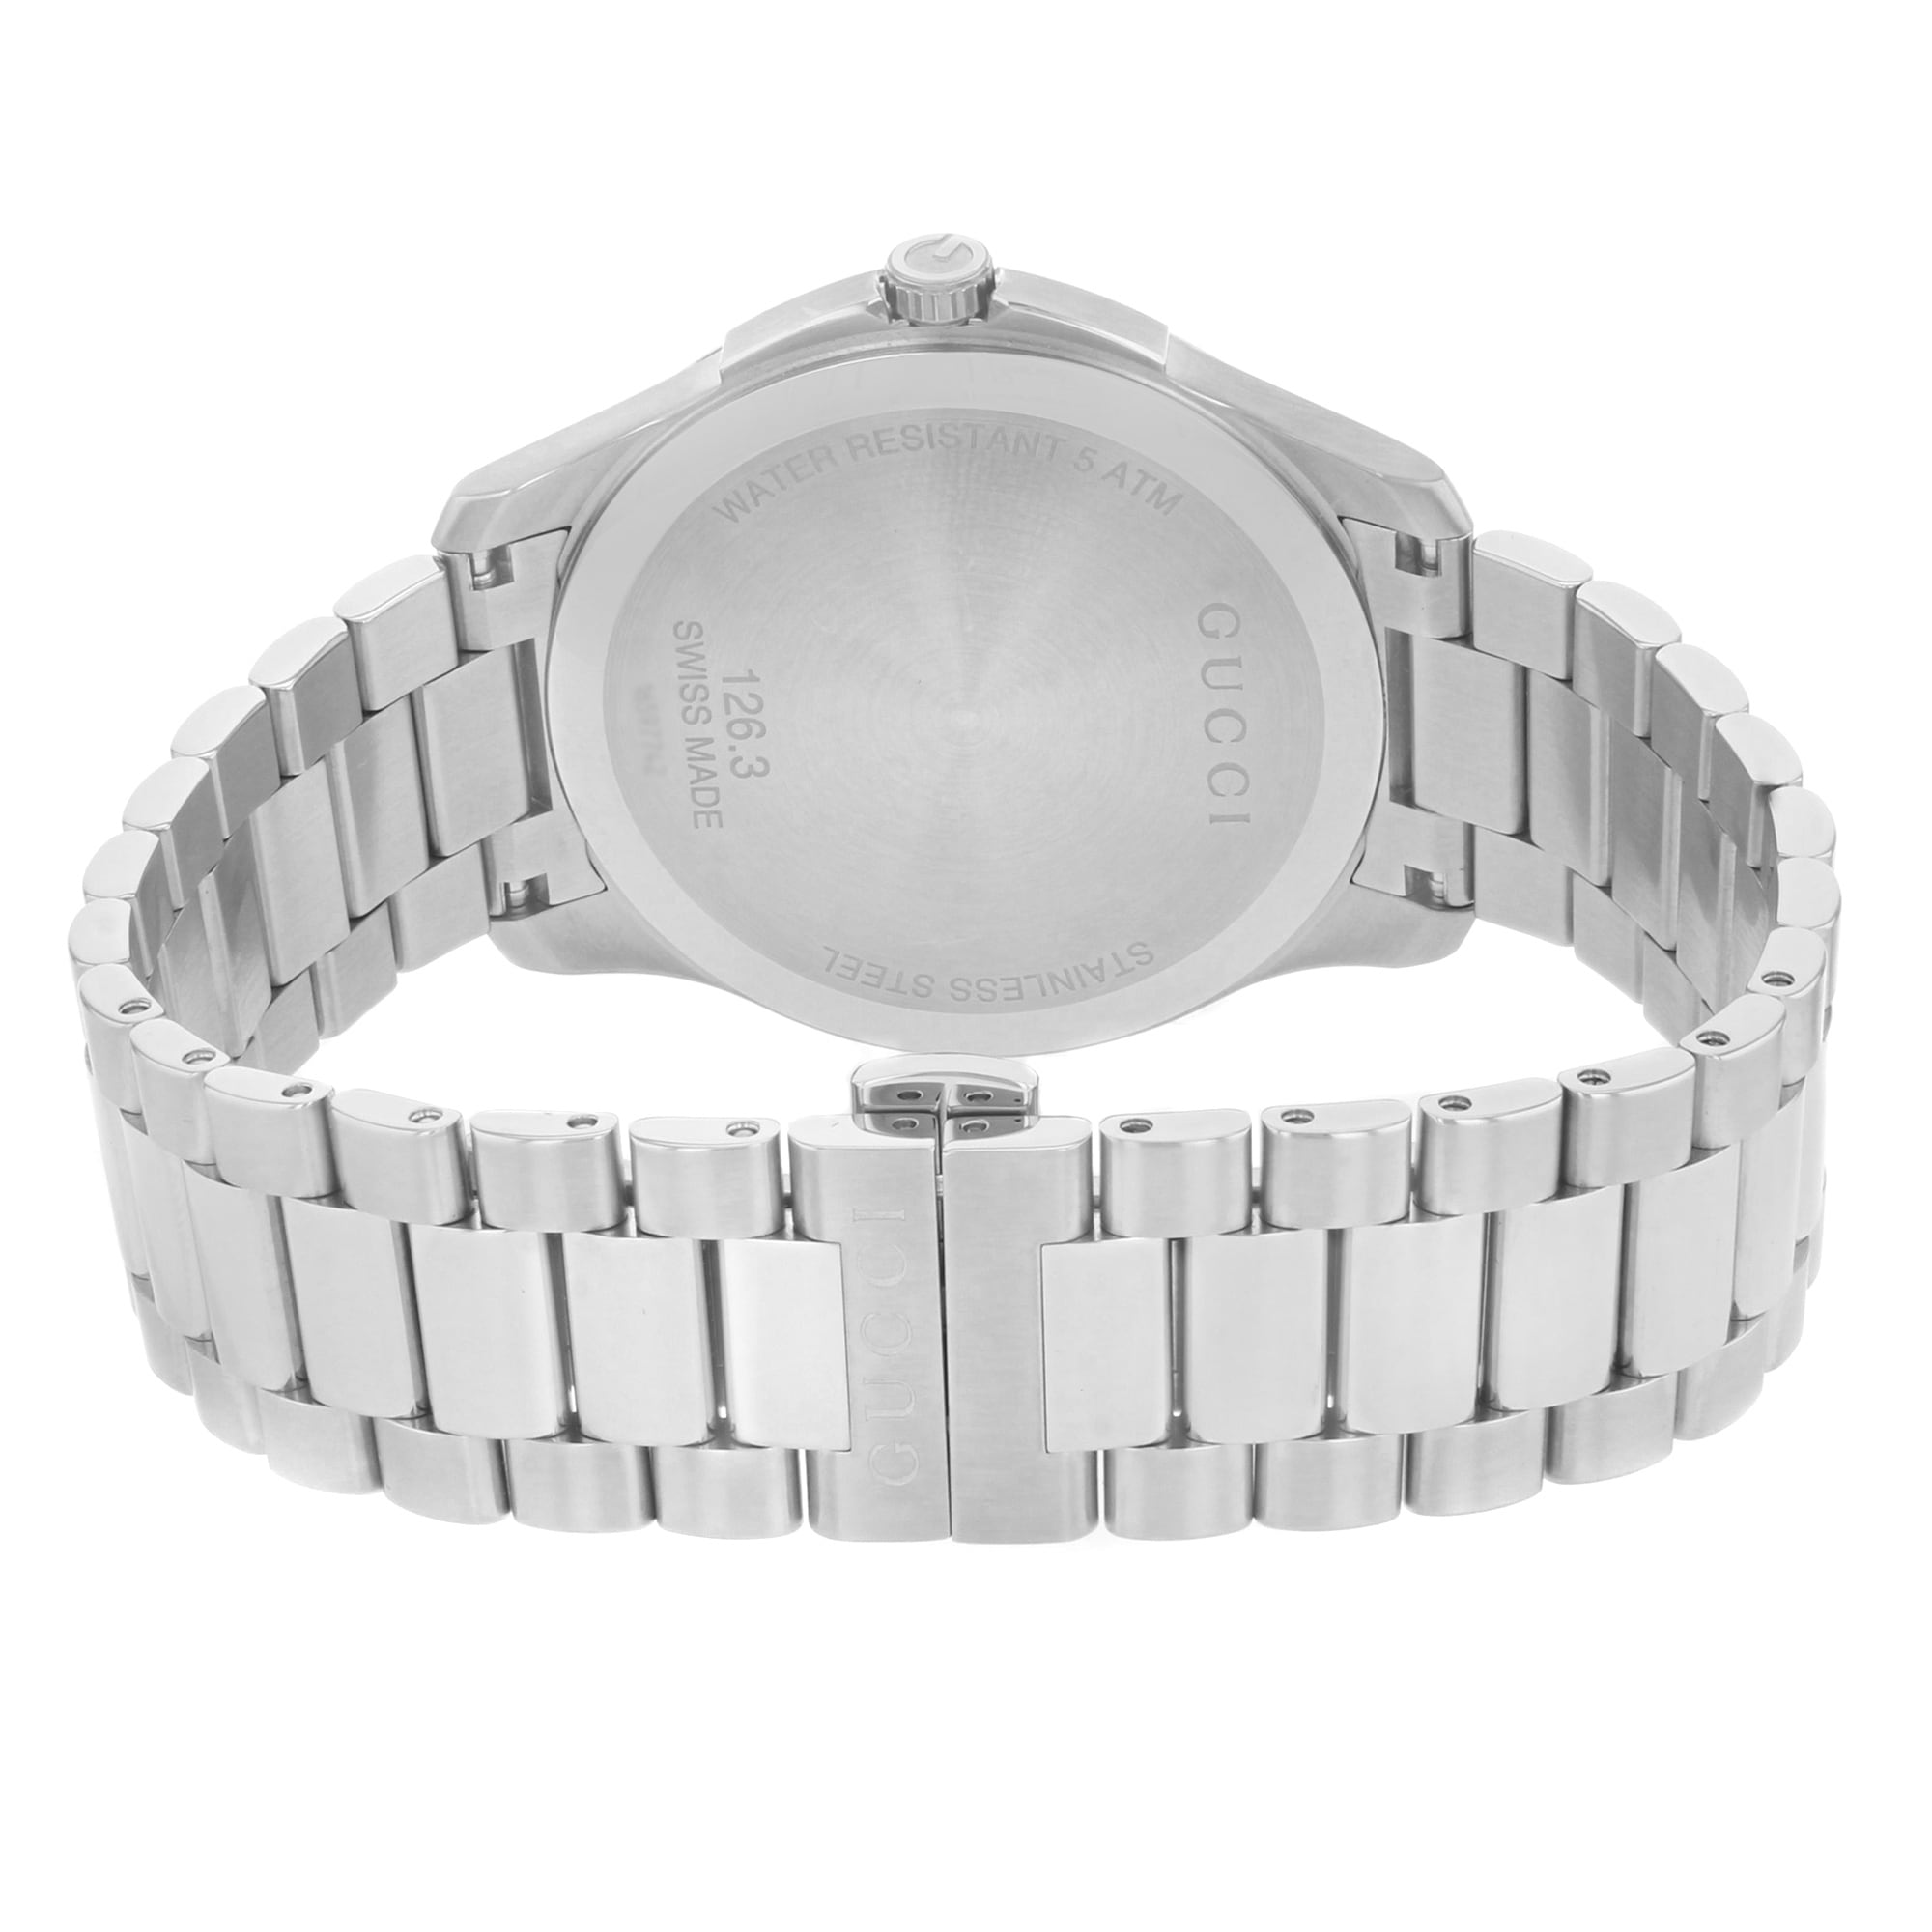 bfa52dca961 Shop Gucci G-Timeless 126.3 YA126310 Stainless Steel Quartz Men s Watch -  Free Shipping Today - Overstock - 17669162